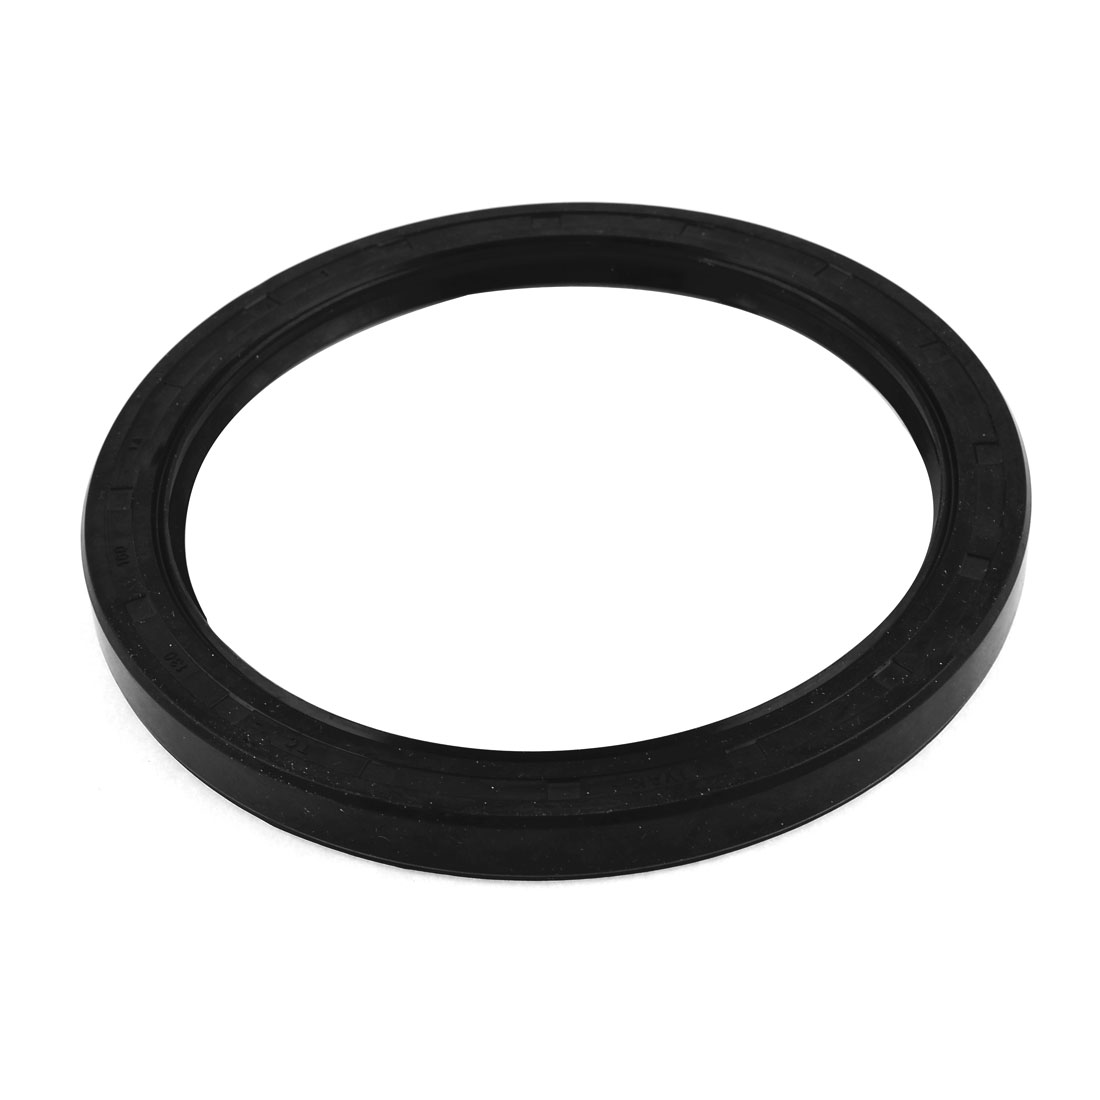 Dual Lip Metric Rotary Shaft Spring Loaded TC Oil Seal Ring 160x130x14mm